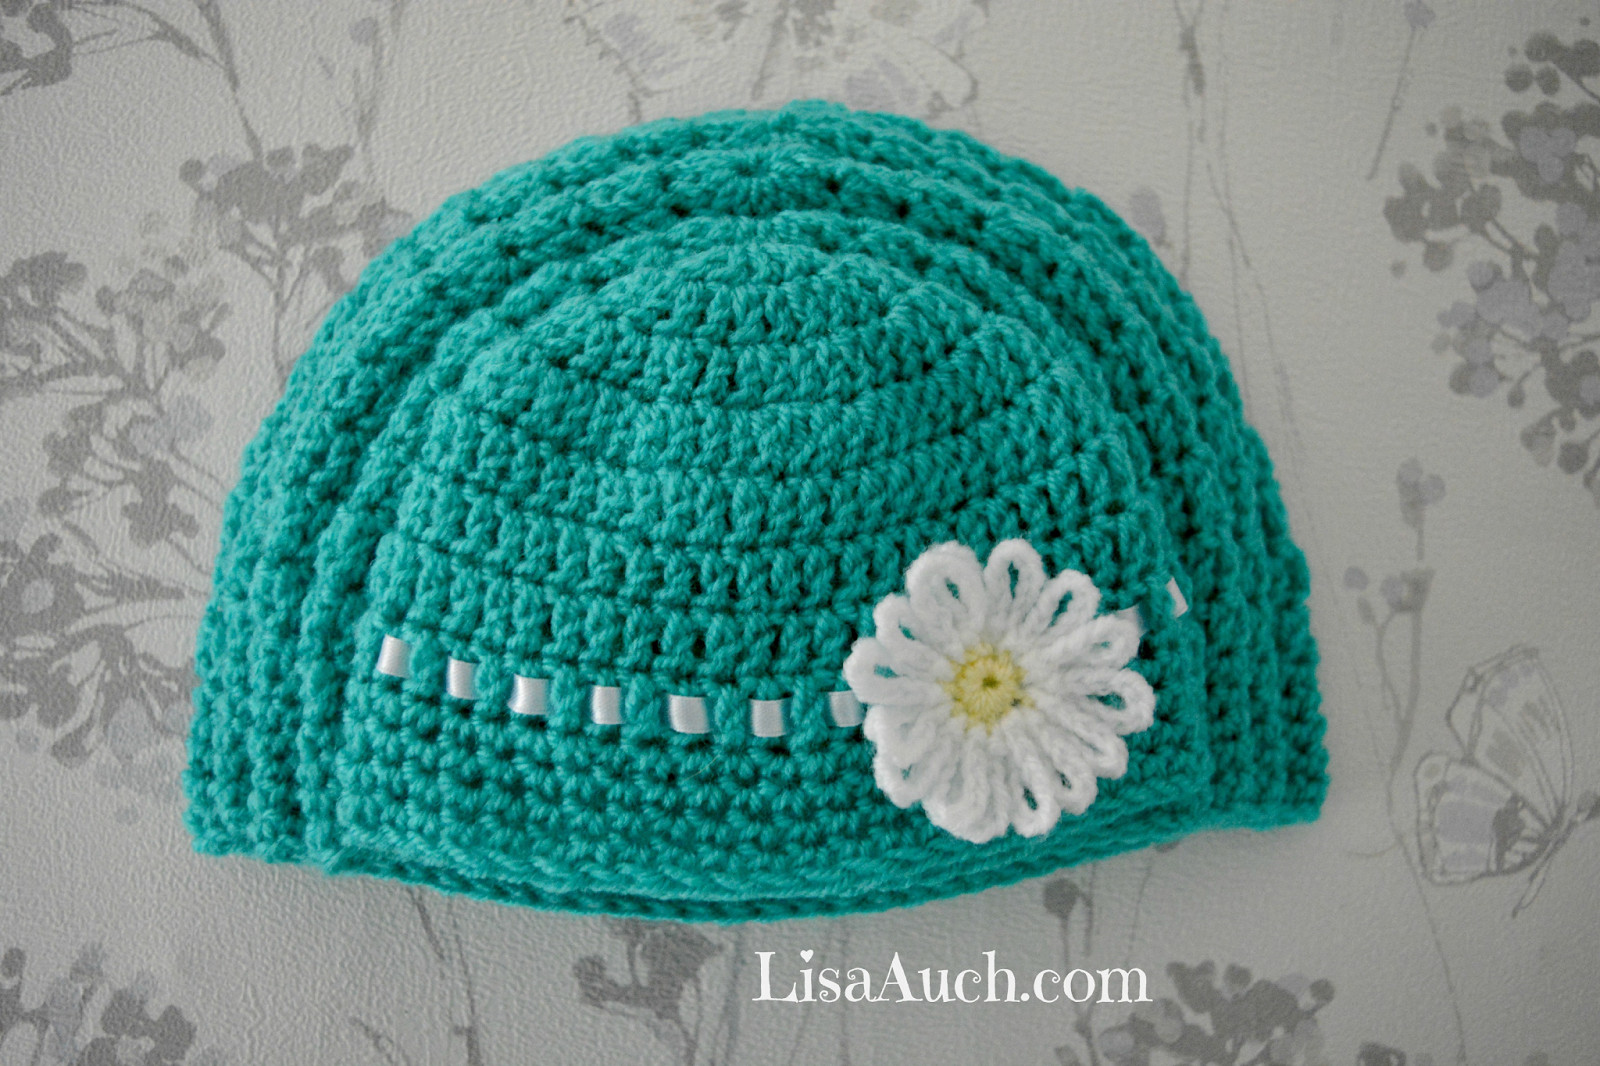 Awesome Free Crochet Baby Beanie Hat Pattern 6 12 Months Single Crochet Beanie Pattern Of Incredible 48 Pics Single Crochet Beanie Pattern